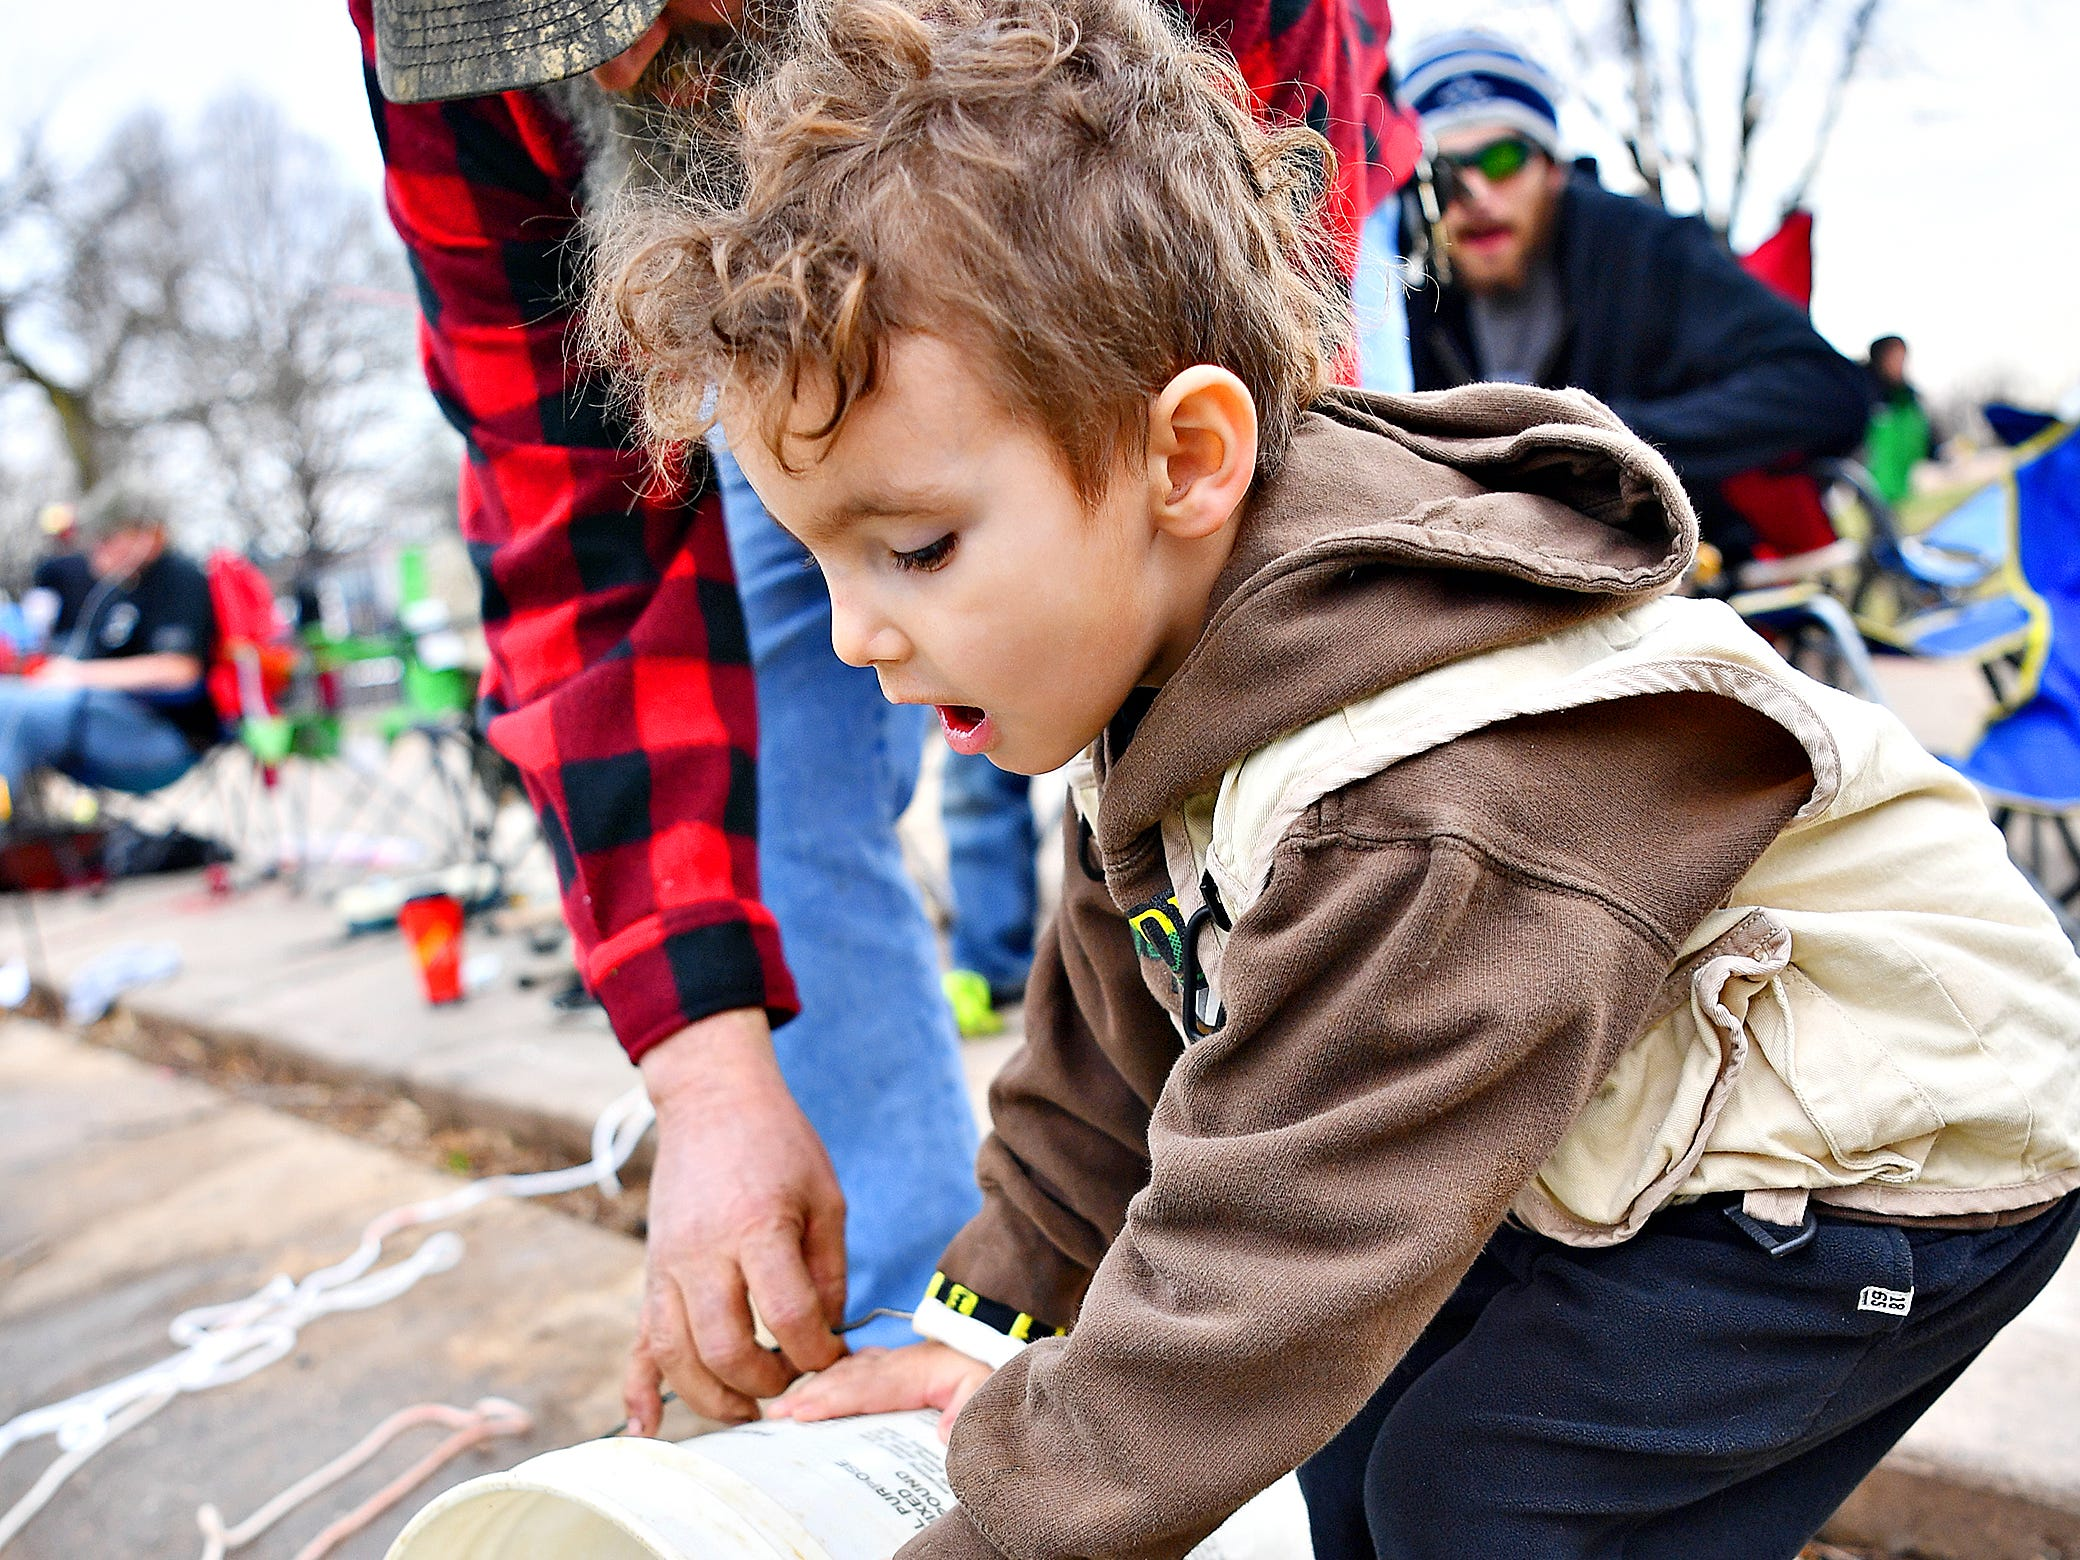 Mark Singleton Sr., left, of Dover, helps his grandson Matthew Singleton, 4,  of West Manchester Township, to pour a bucket of fish into Kiwanis Lake during the 21st Annual William Shaffer Trout Fishing Derby in York City, Saturday, March 30, 2019. Dawn J. Sagert photo